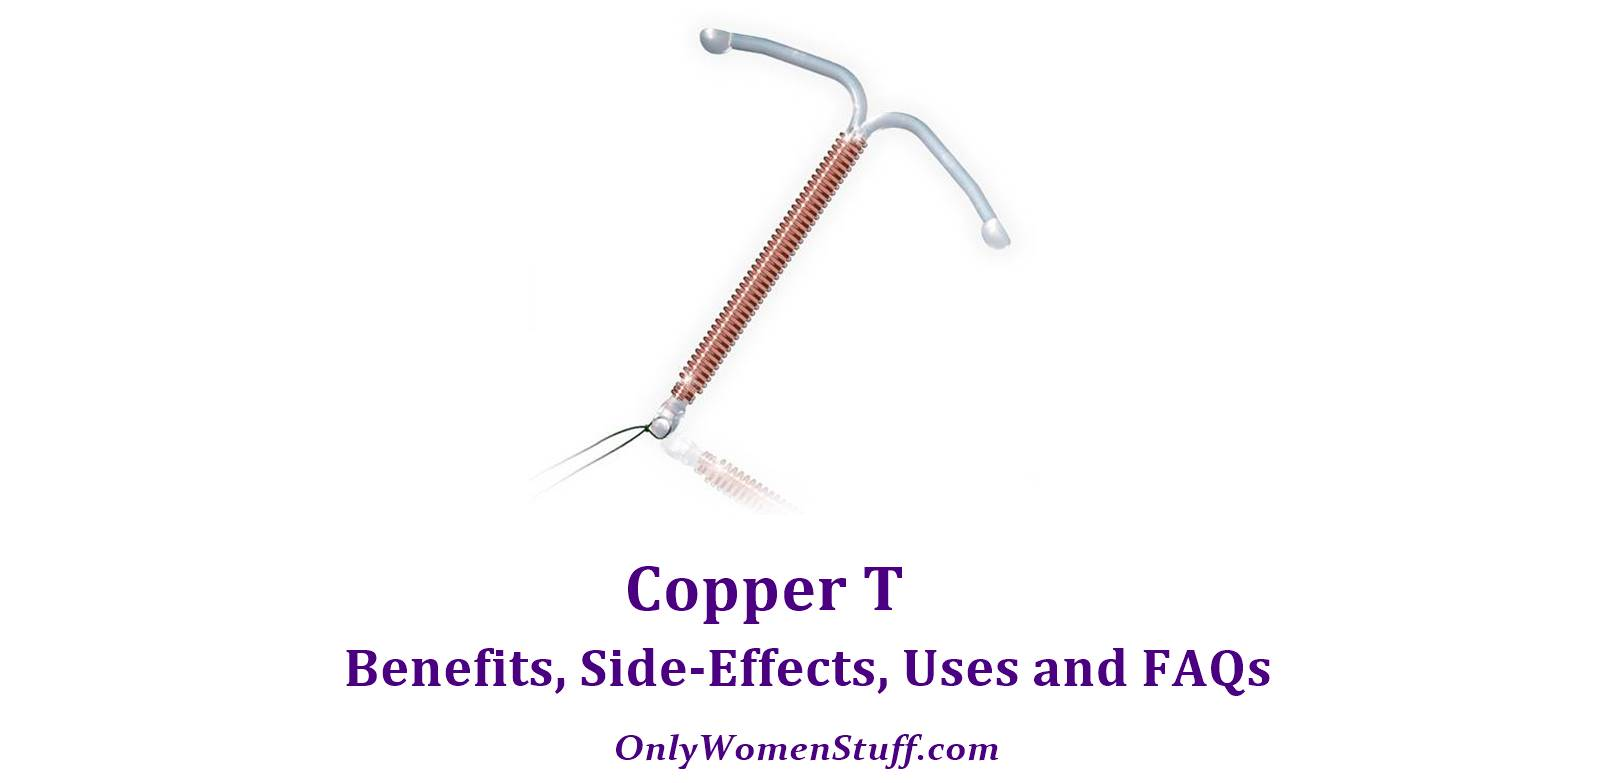 Copper T: Benefits, Side-Effects, Uses and FAQs